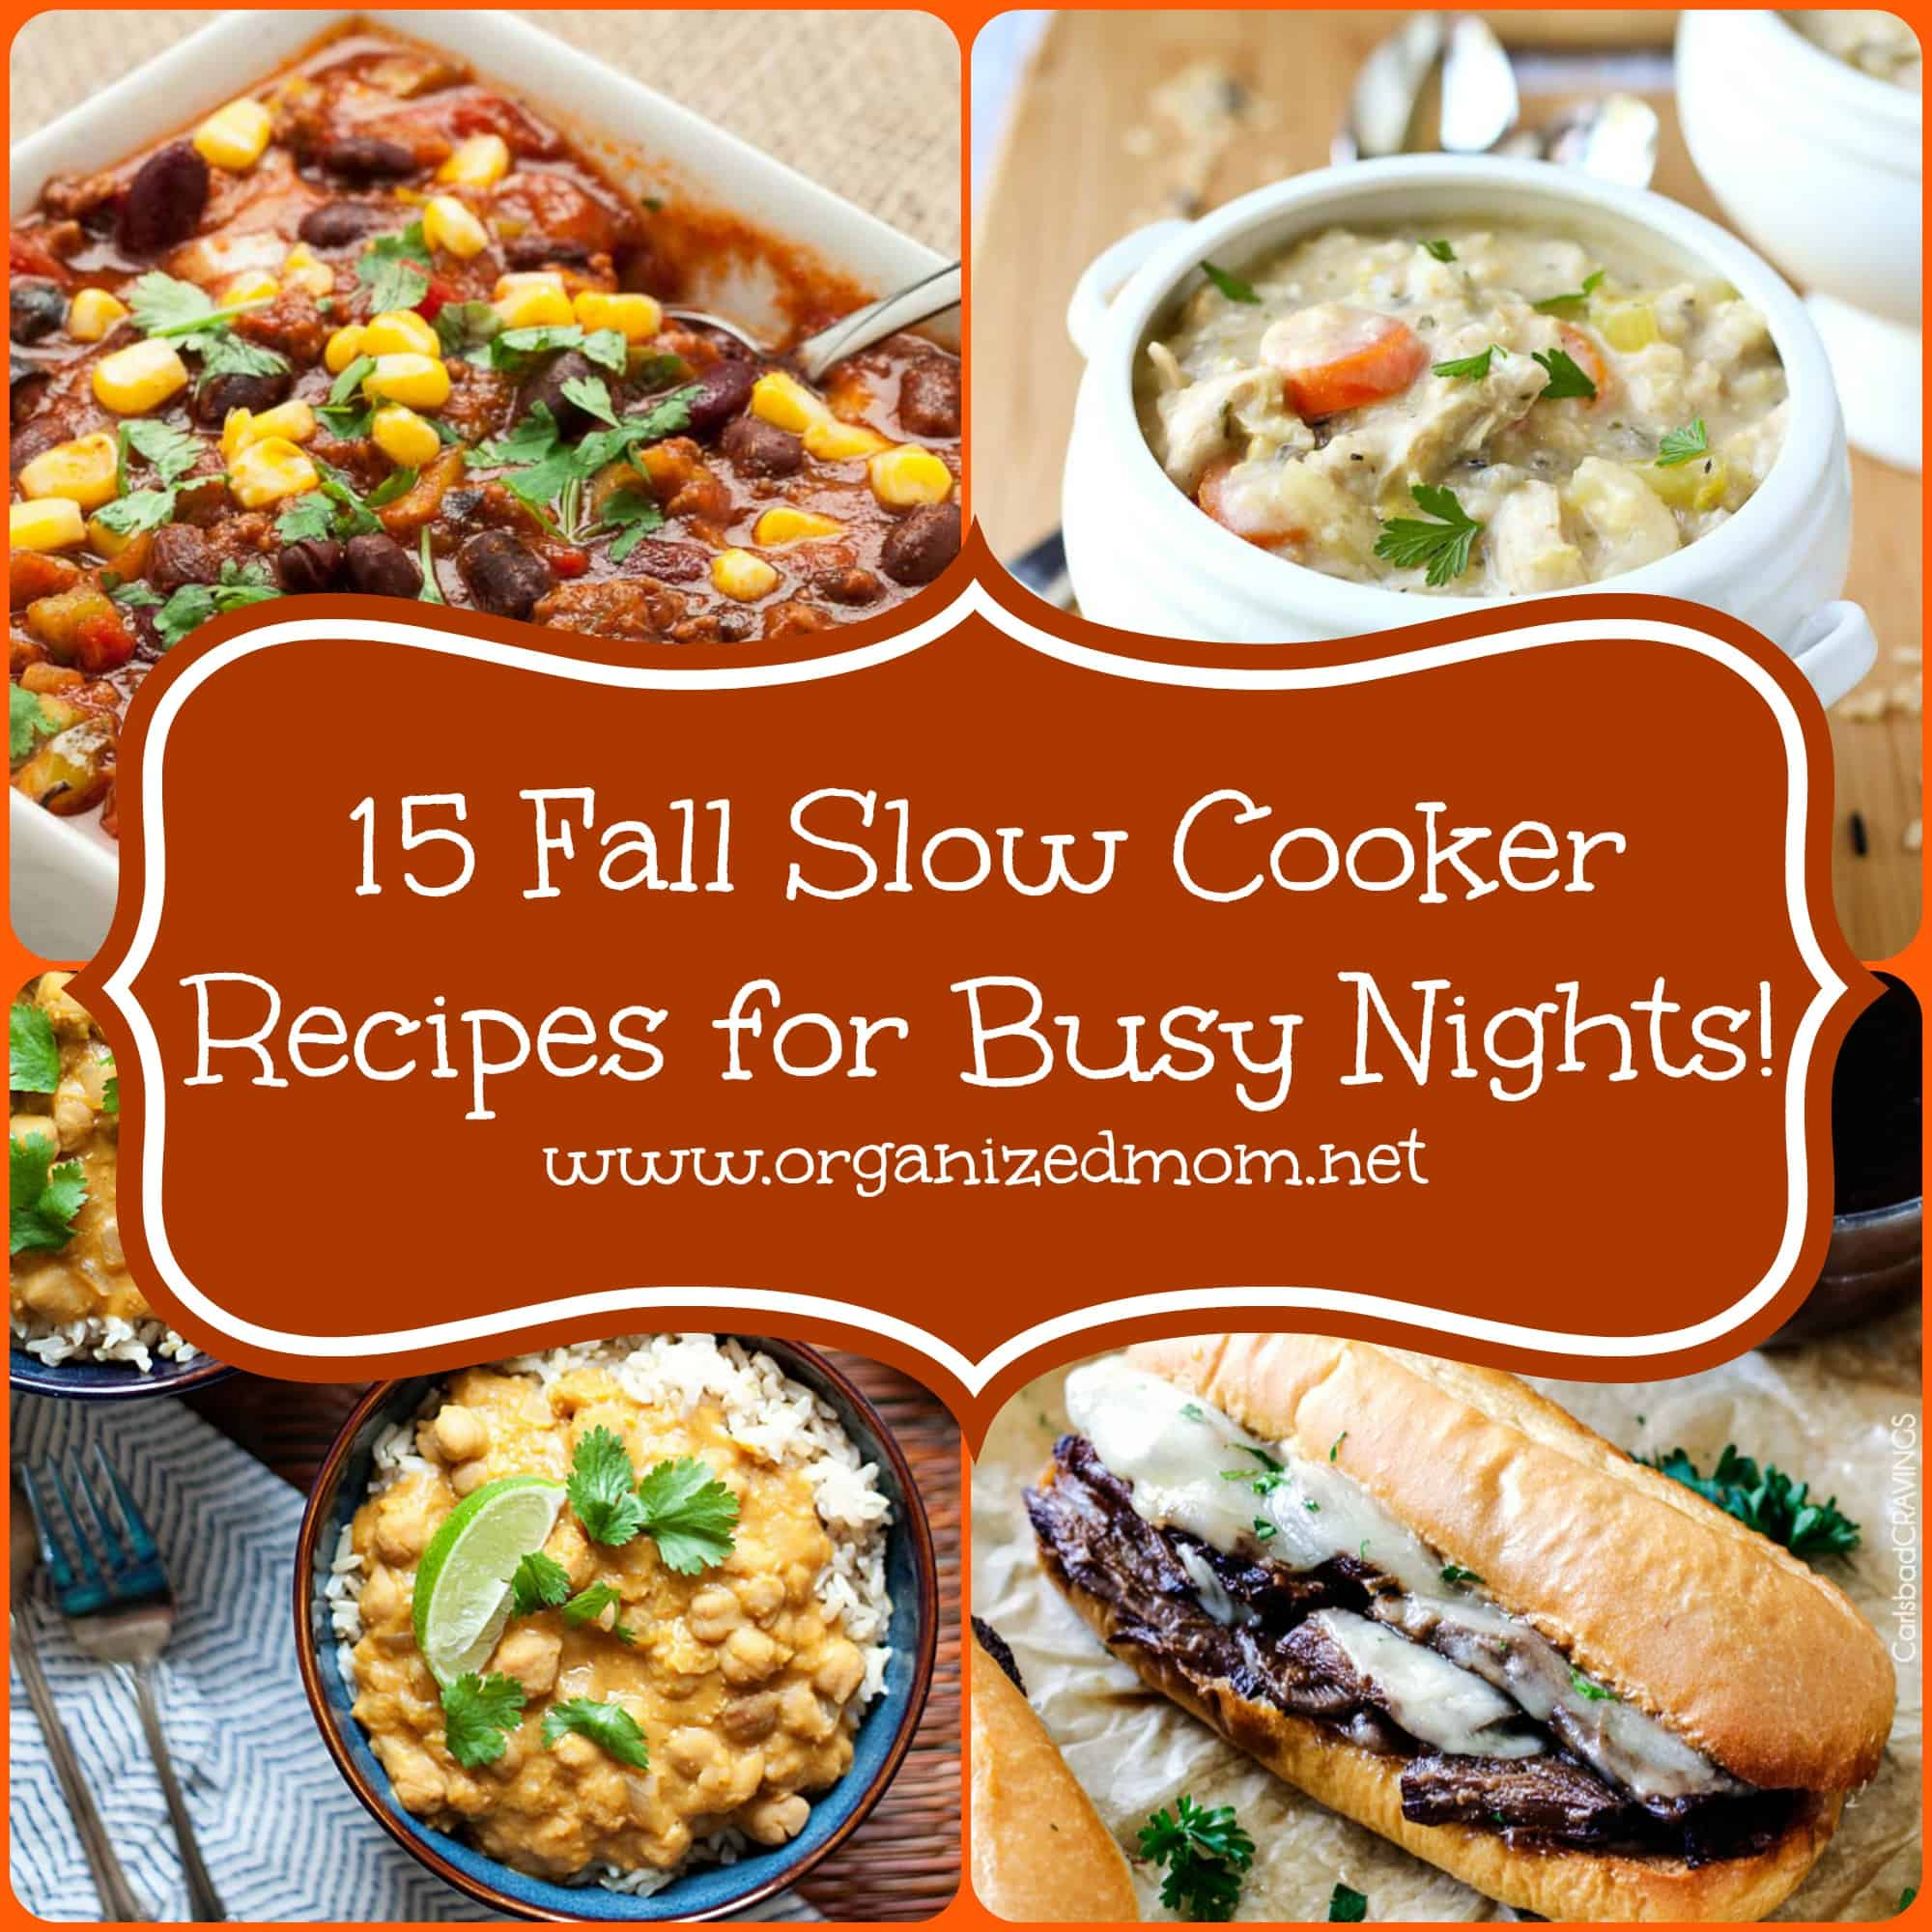 15-fall-slow-cooker-recipes-for-busy-nights-square